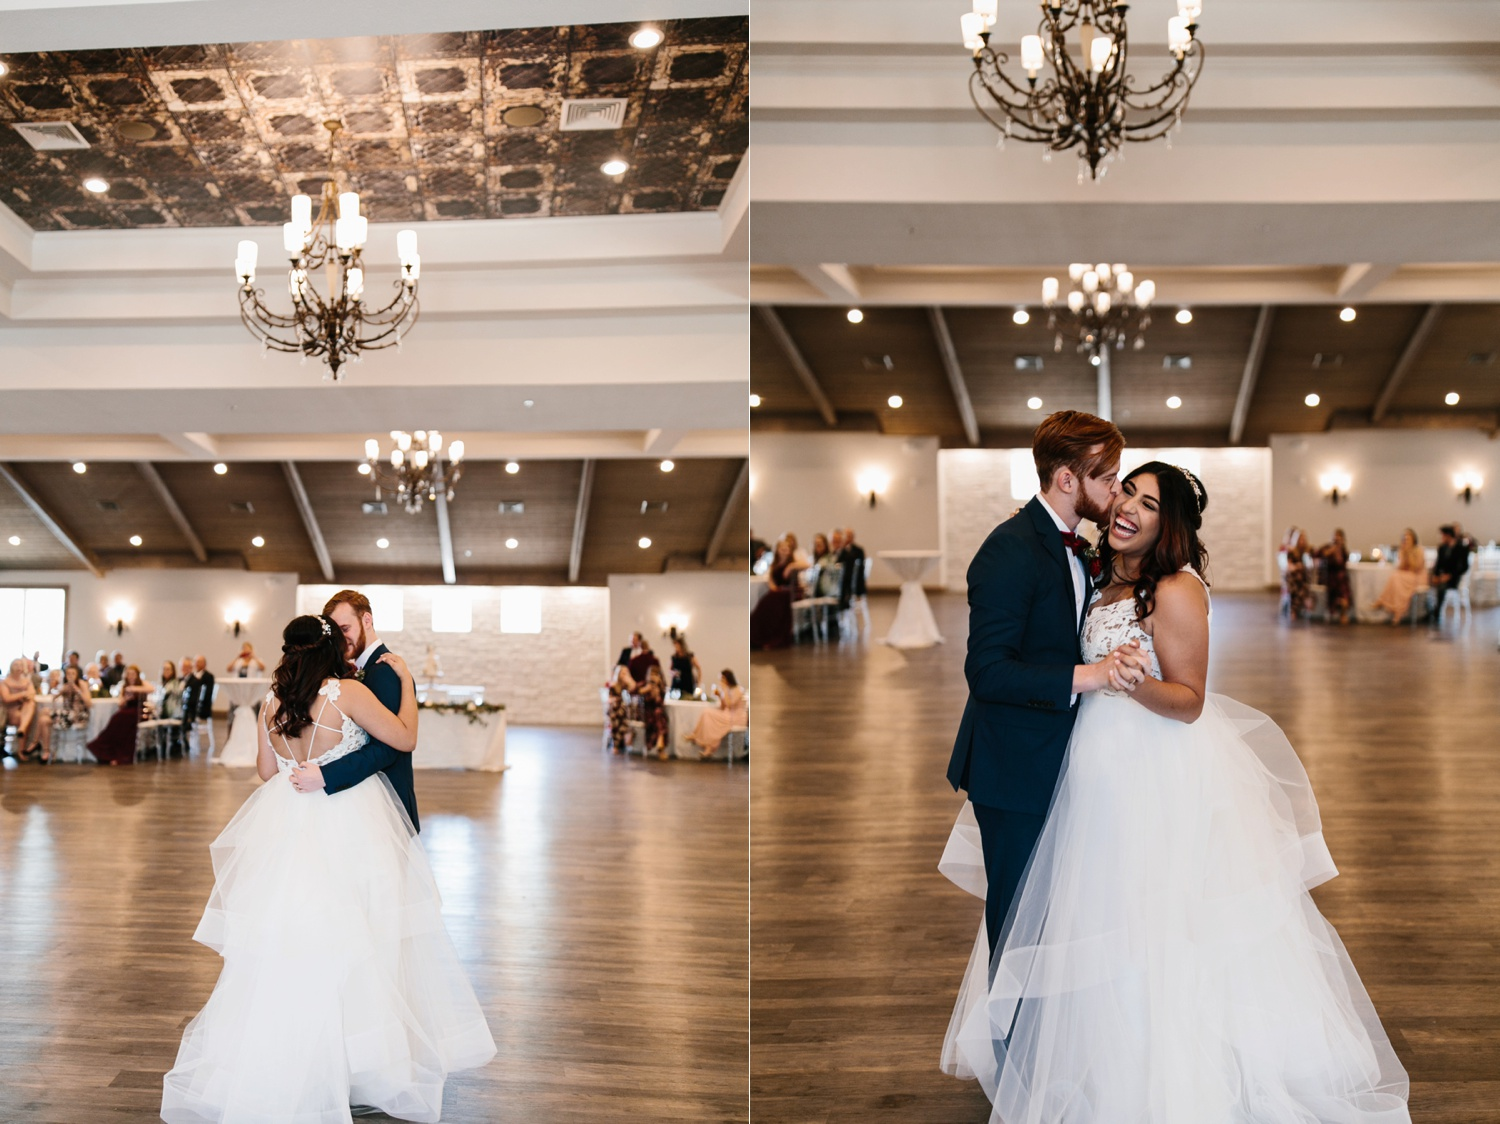 Grant + Lysette | a vibrant, deep burgundy and navy, and mixed metals wedding at Hidden Pines Chapel by North Texas Wedding Photographer Rachel Meagan Photography 133